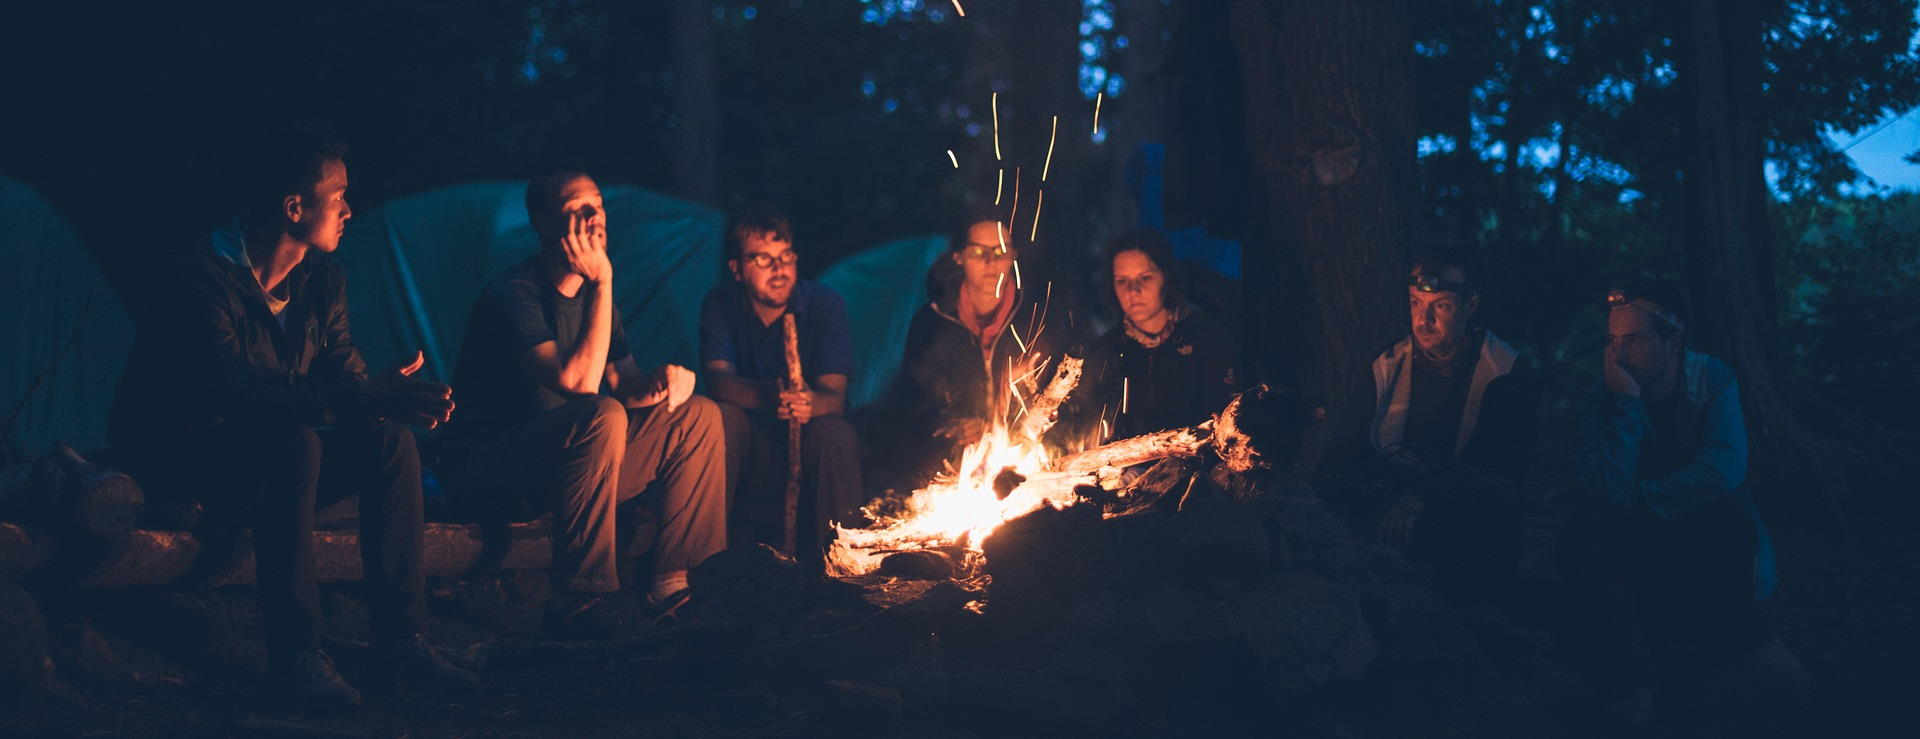 Storytelling am Lagerfeuer